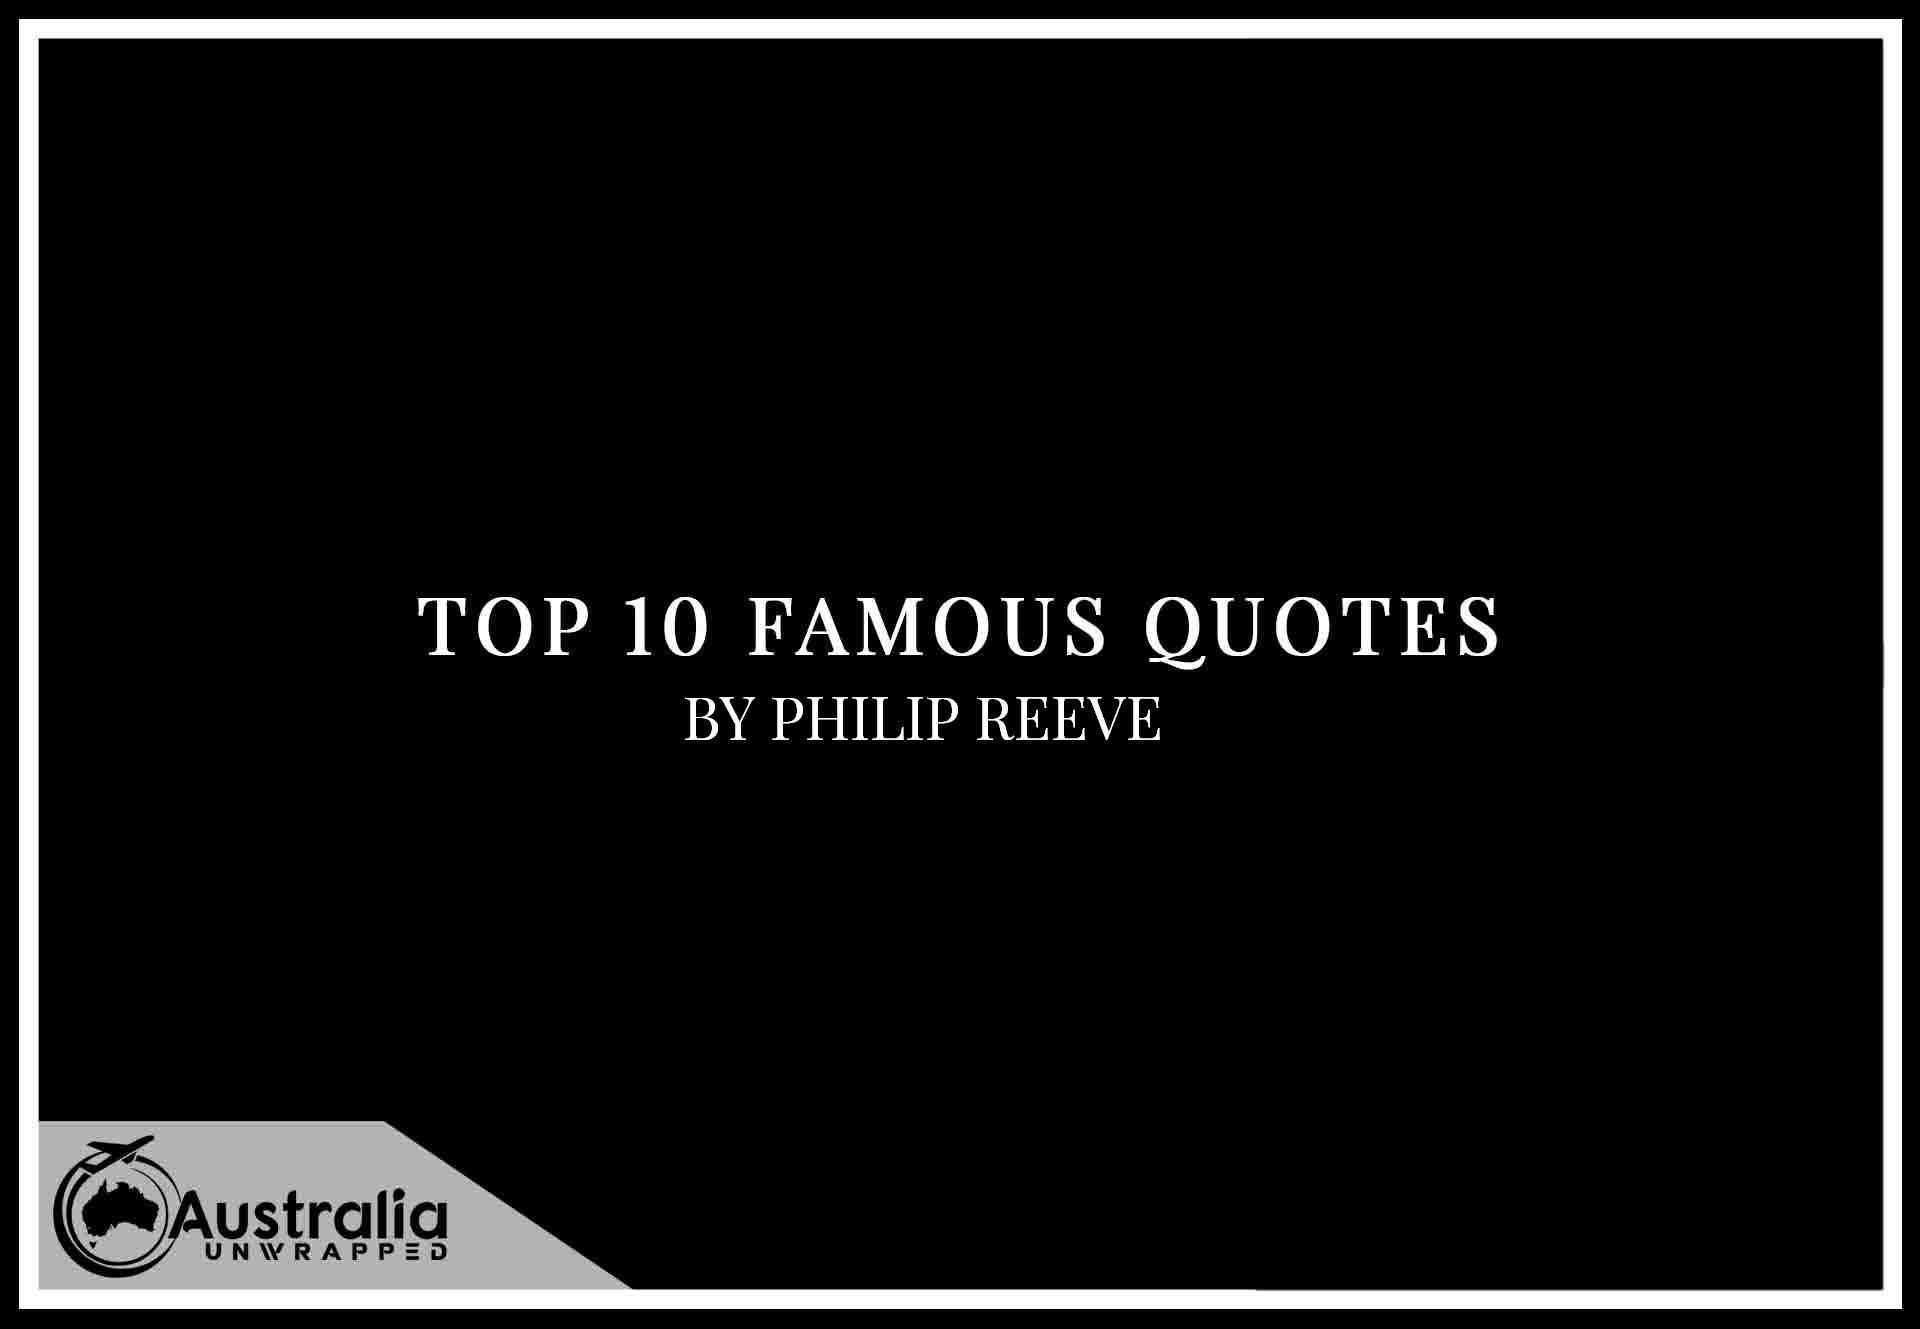 Top 10 Famous Quotes by Author Philip Reeve